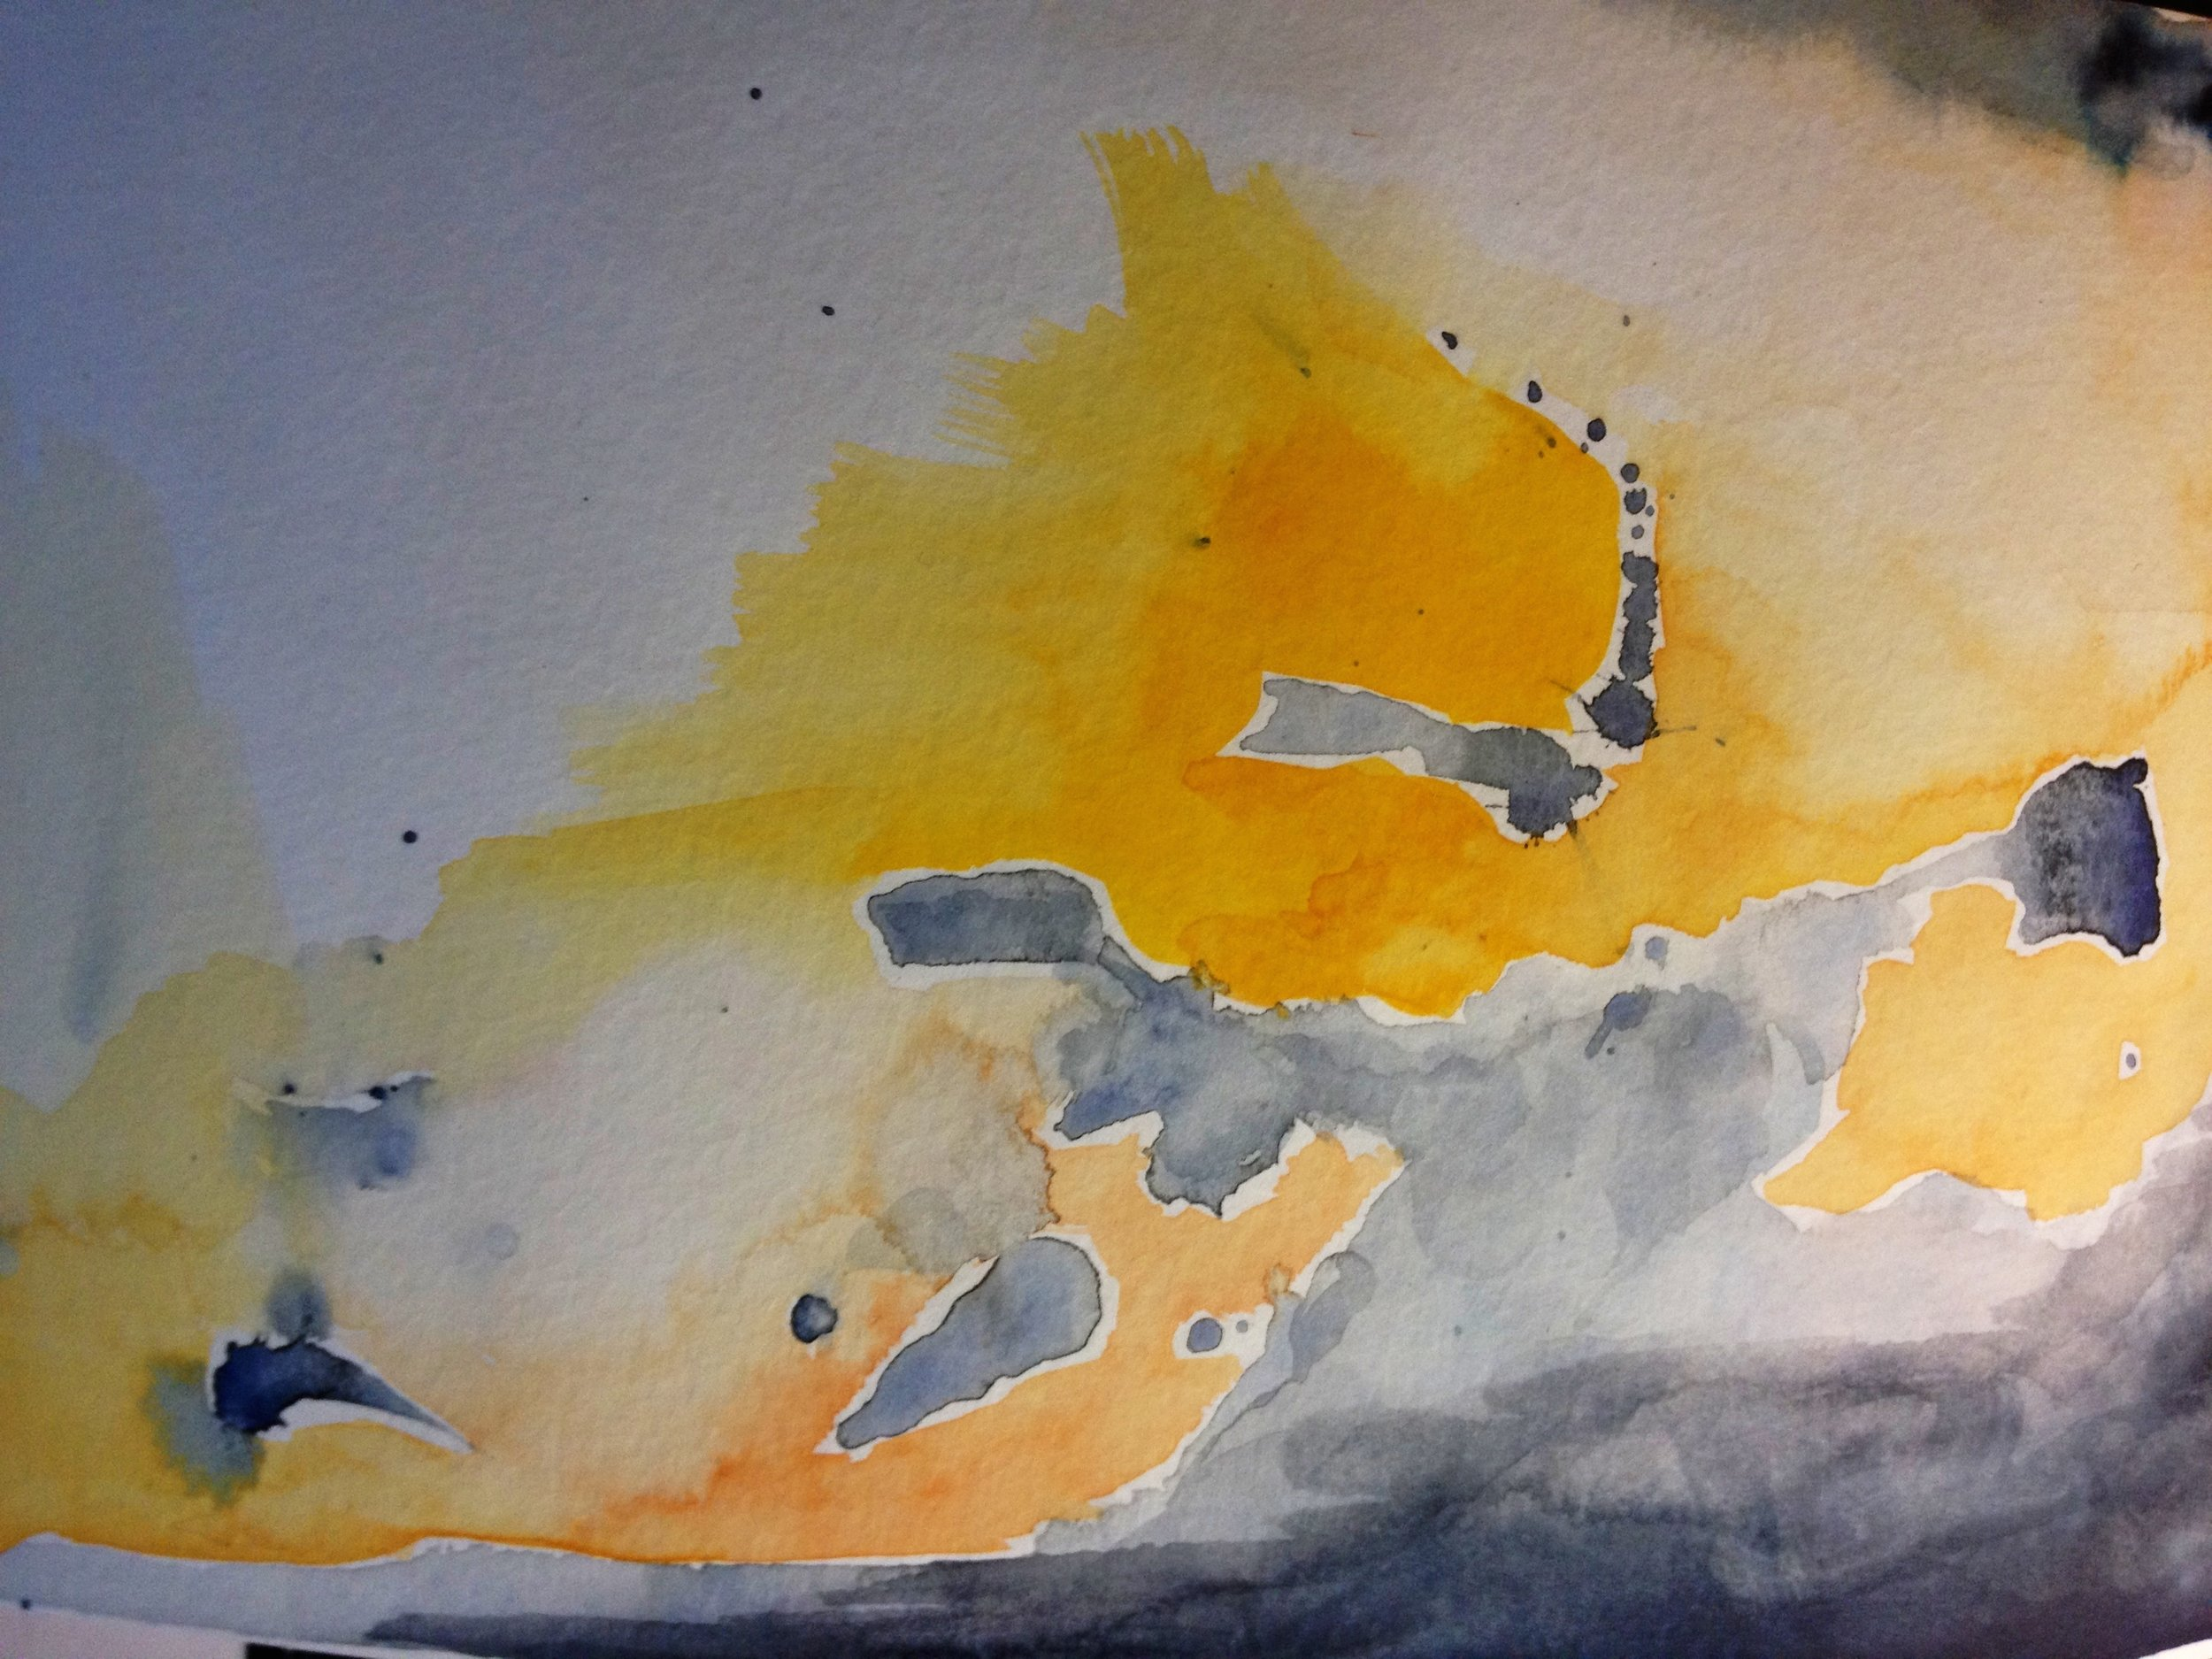 watercolor14.jpg